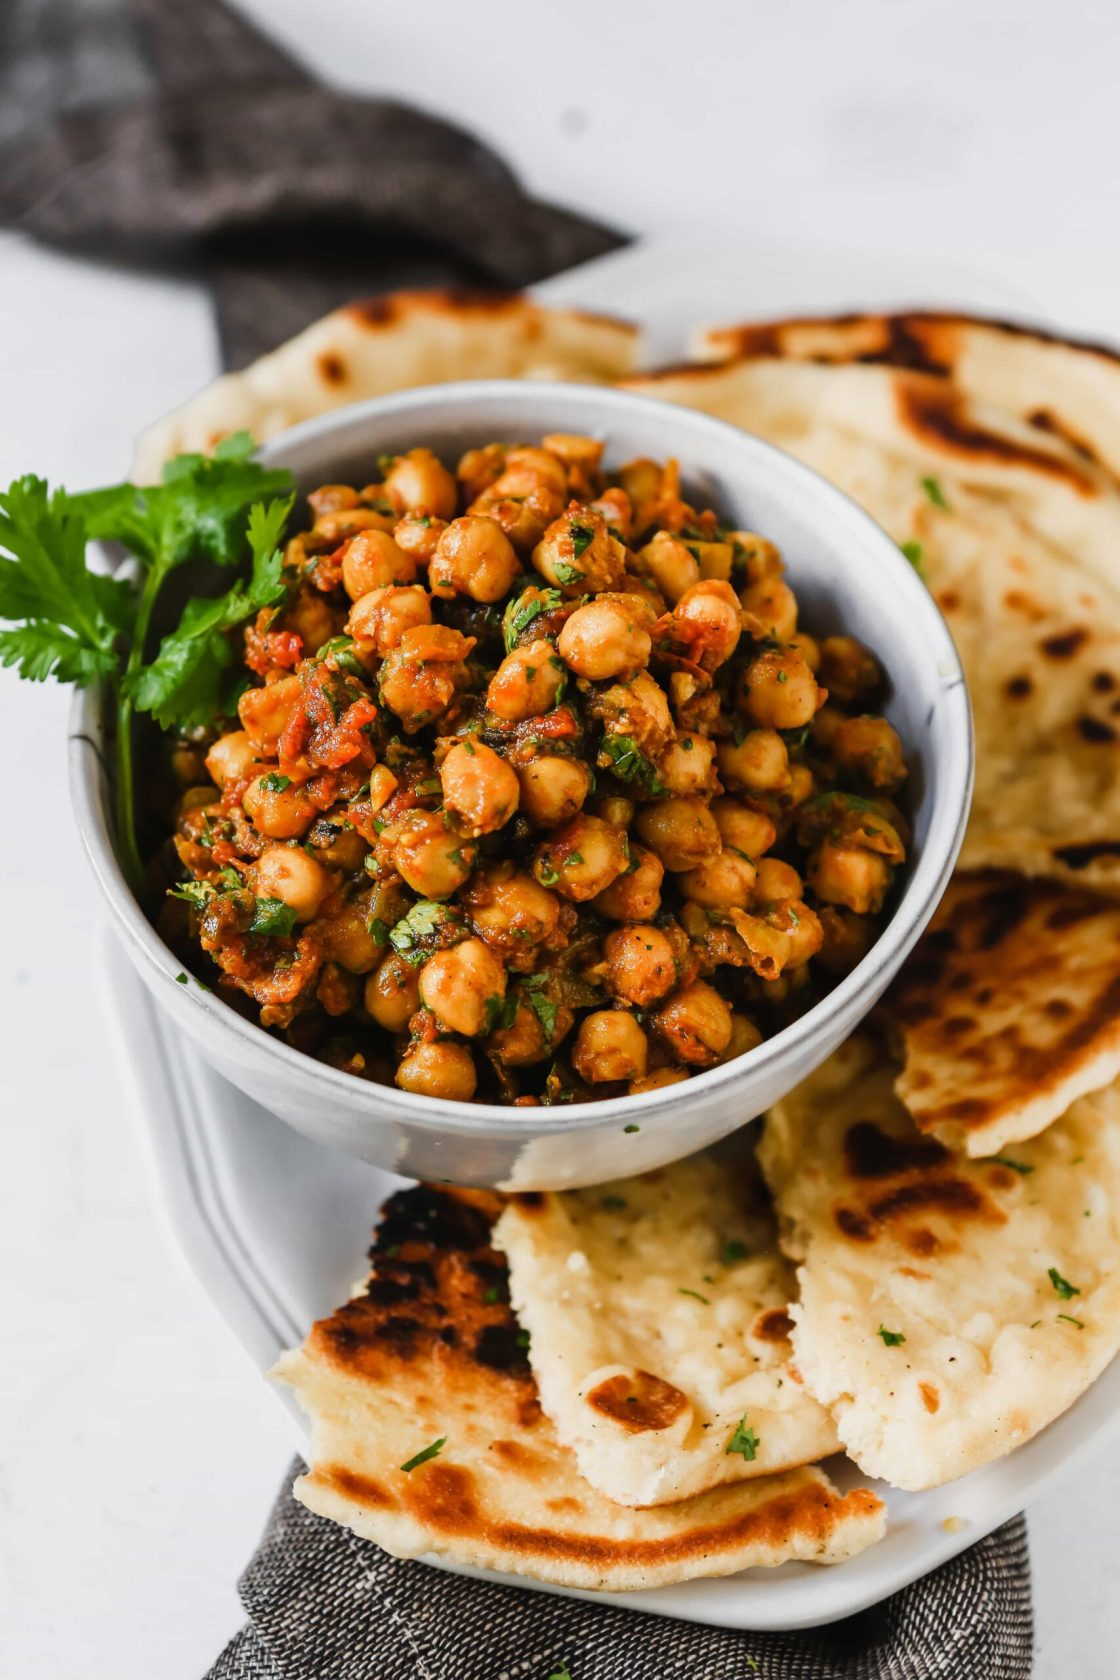 chickpeas and tomatoes in a white dish set on a white plate with homemade naan bread.